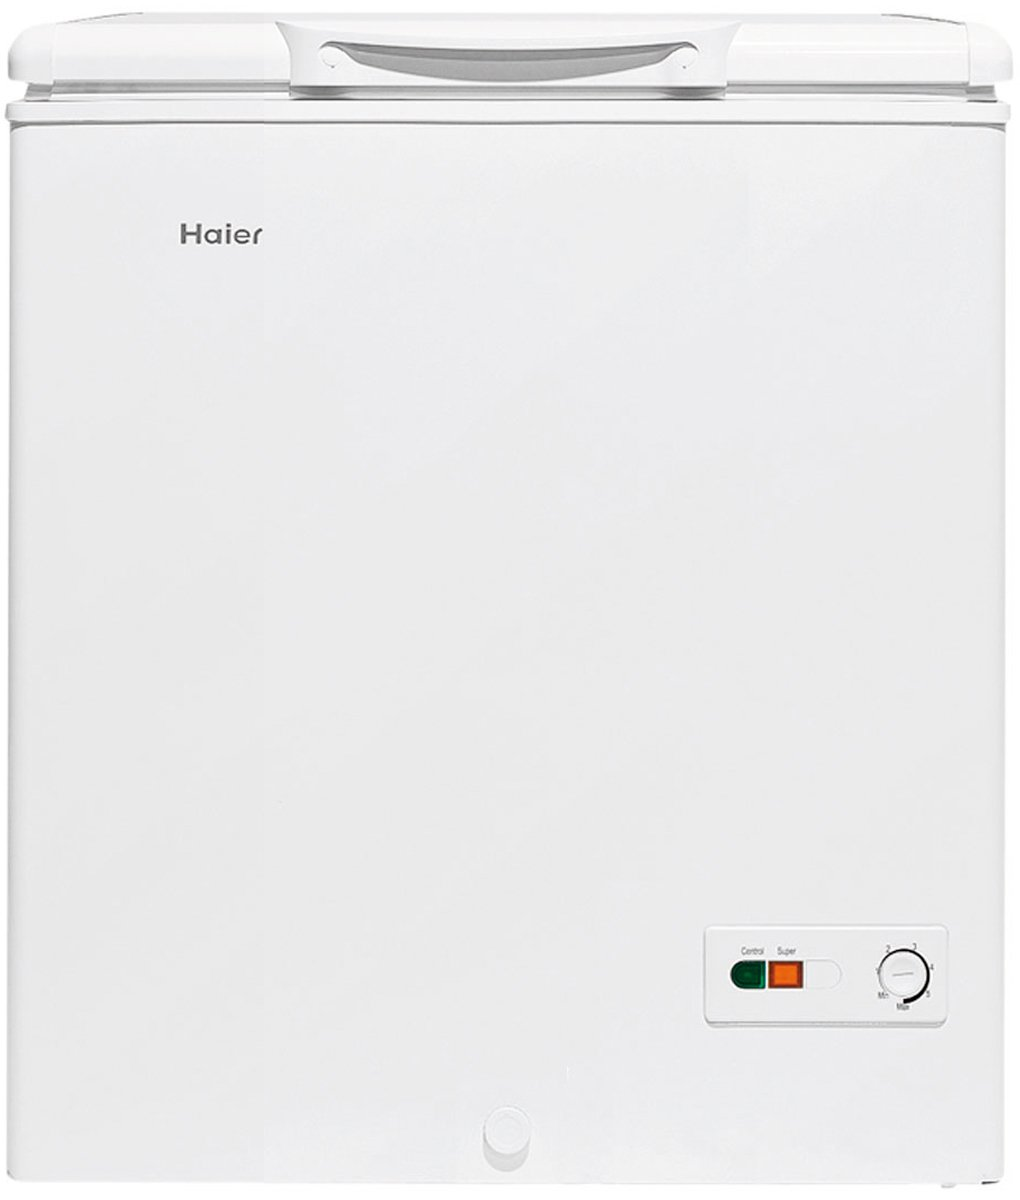 electrolux washer dryer combo manual